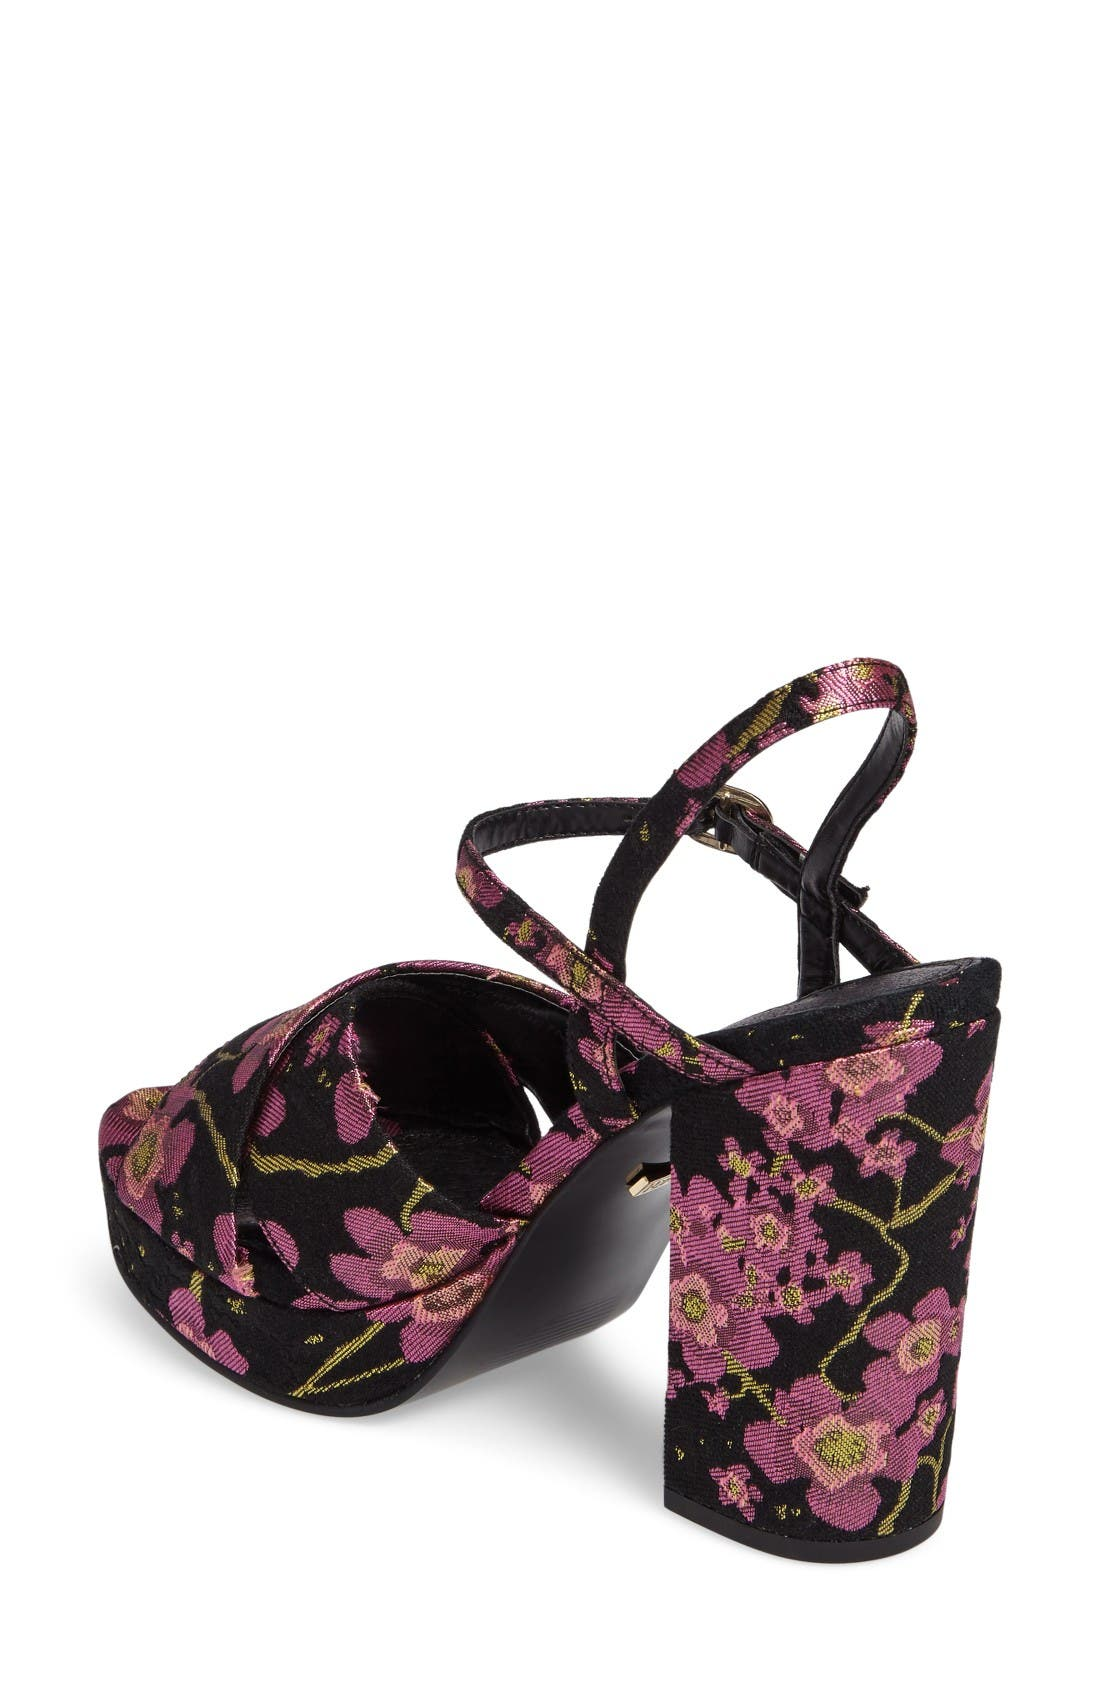 'Leona' Print Platform Sandal,                             Alternate thumbnail 2, color,                             Dark Pink Multi